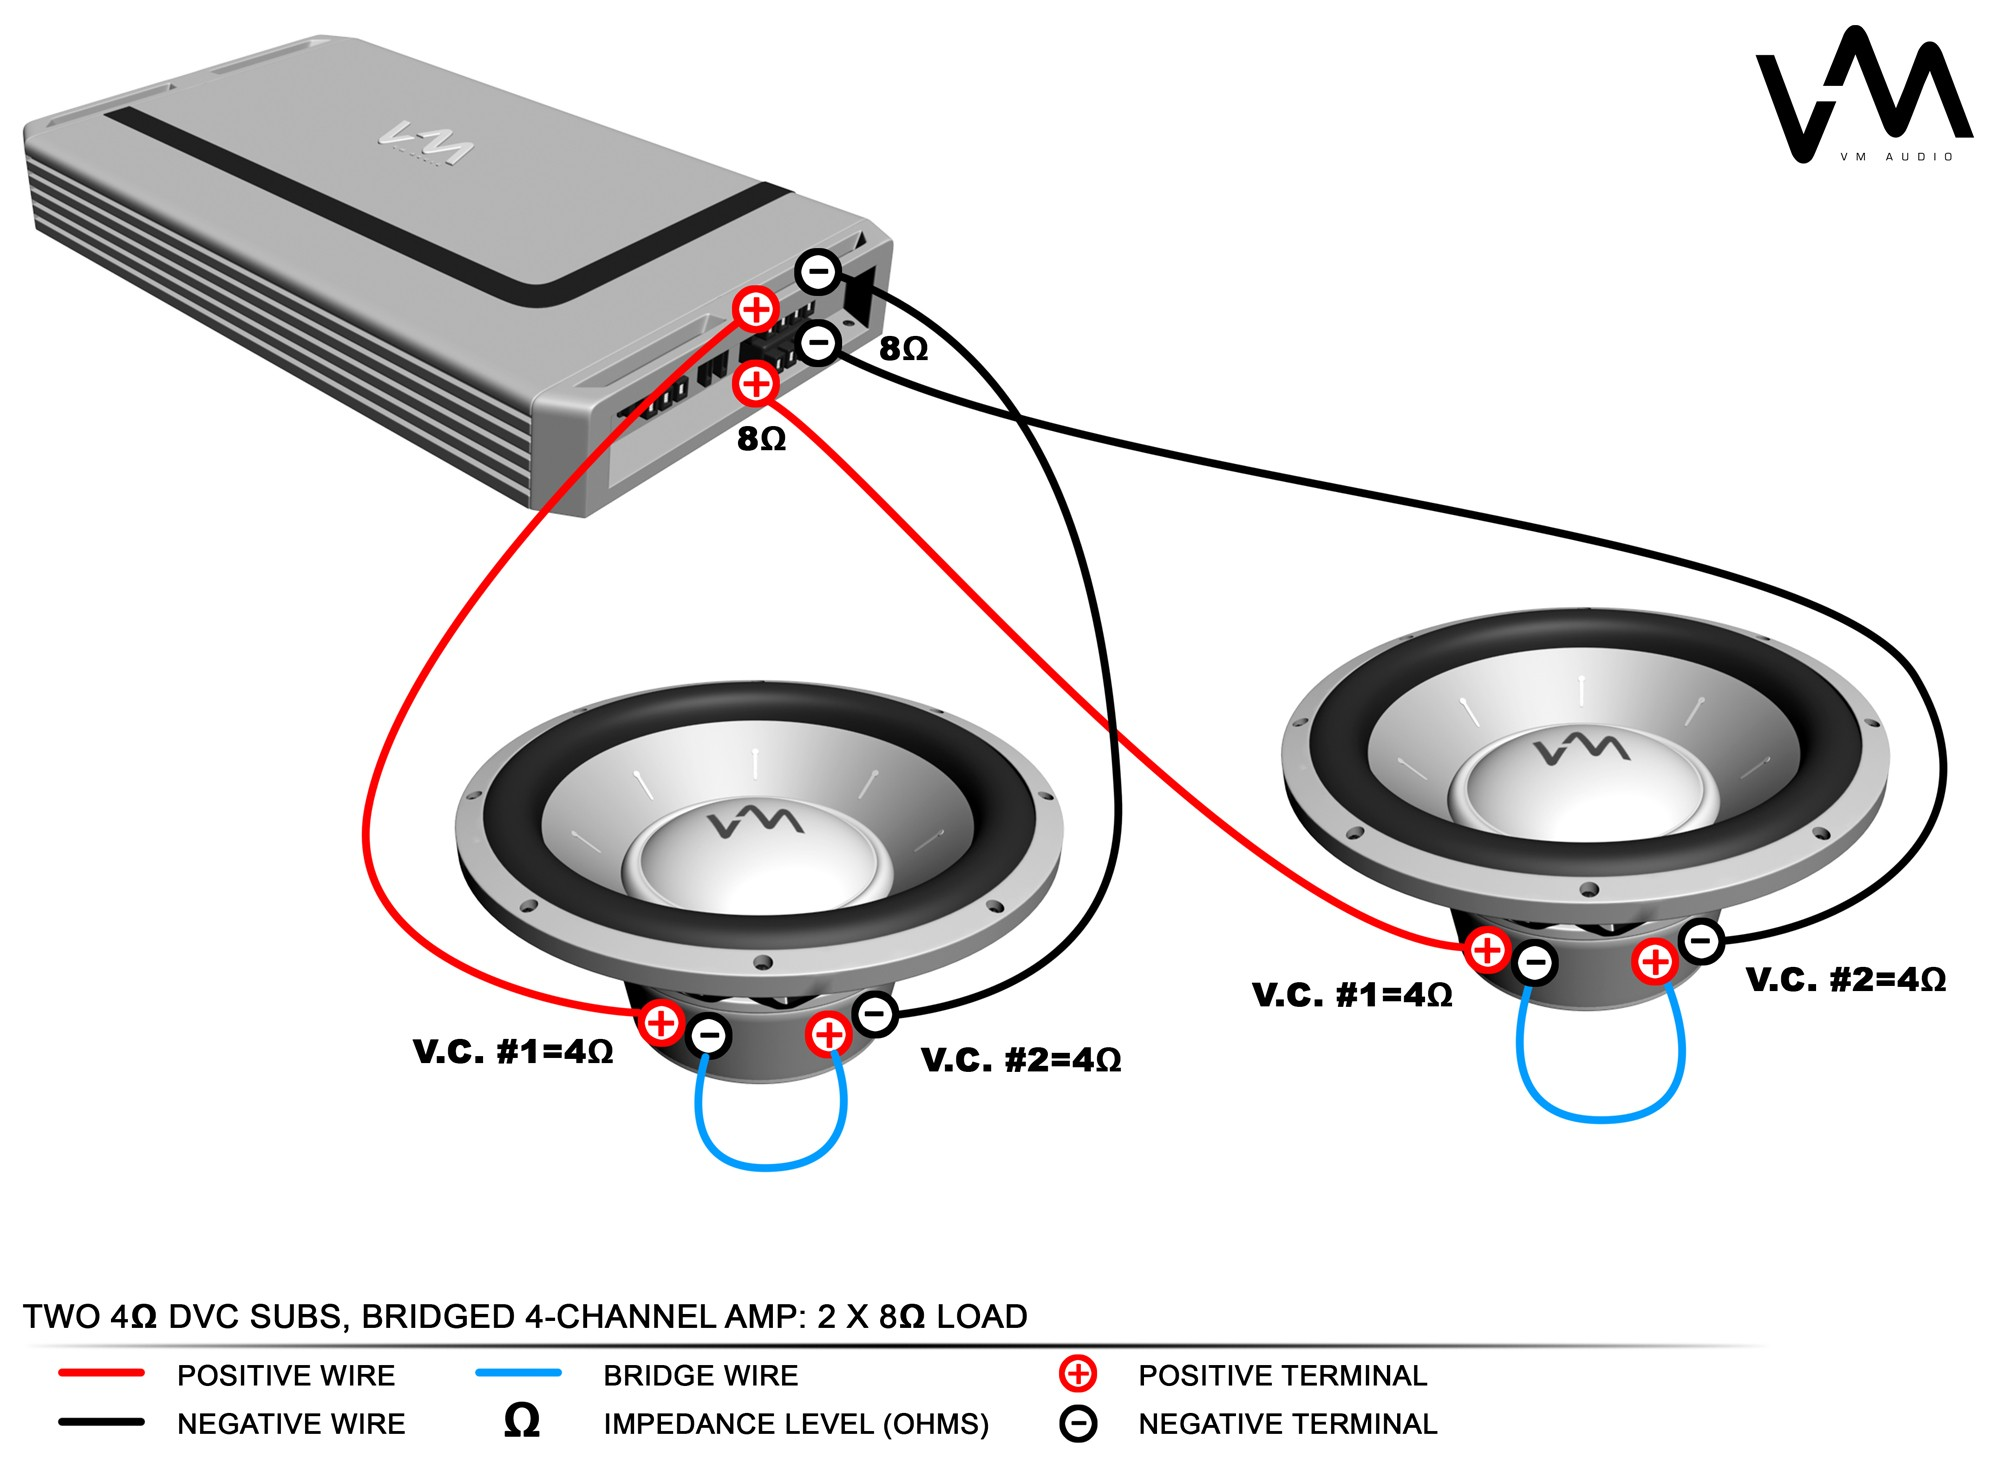 Subwoofer Wiring Diagrams Best Ideas 4 Channel Amp Wiring Diagram